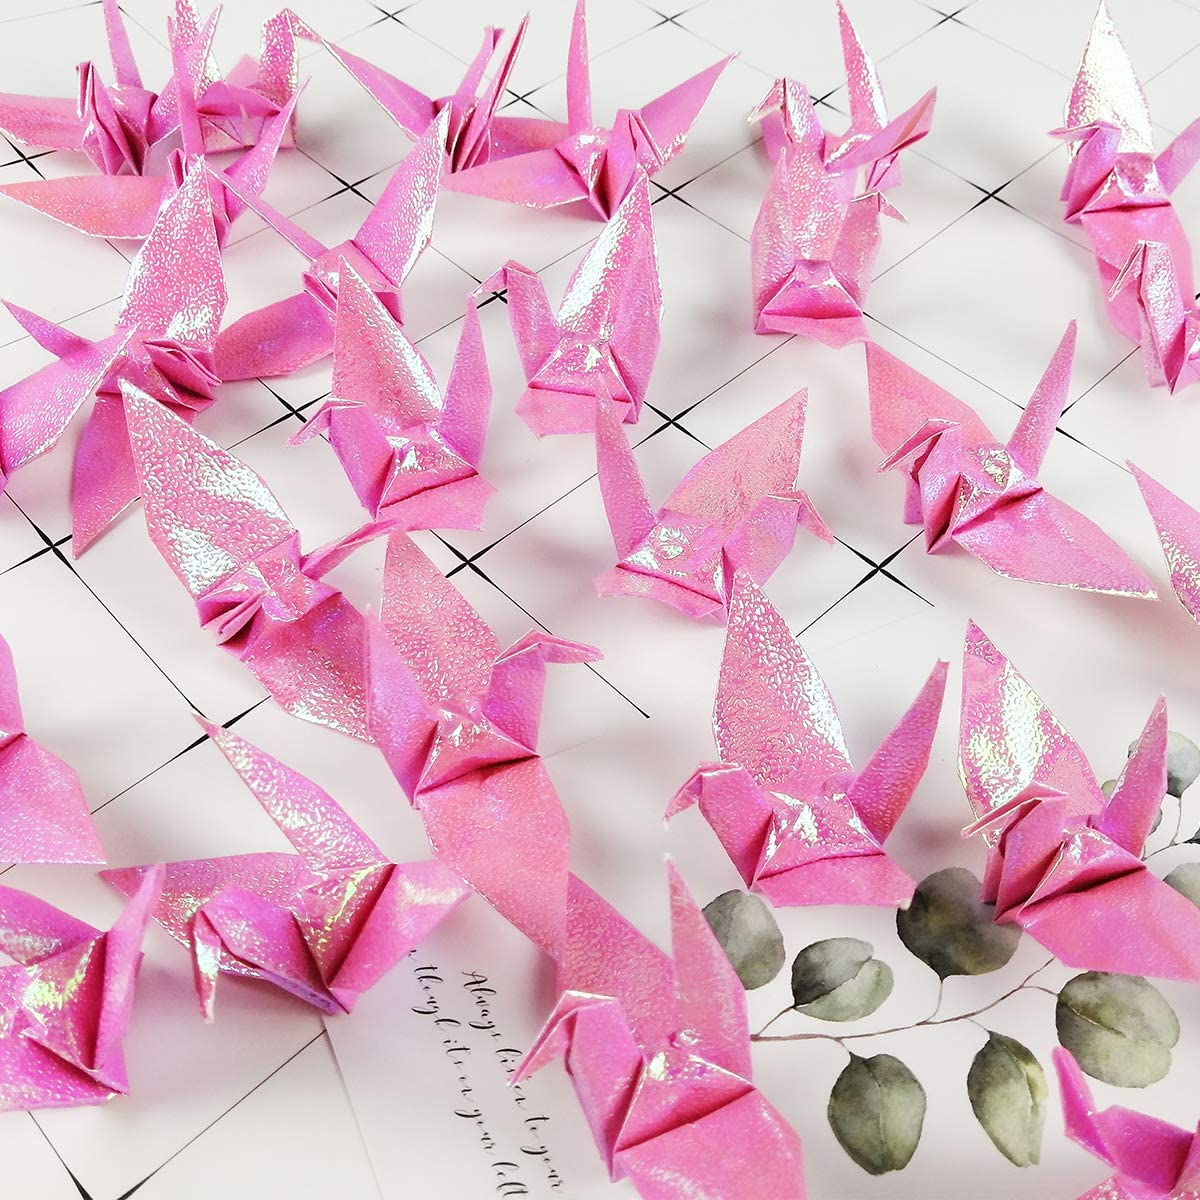 Cieovo 100 PCS Pearl White Origami Paper Crane Folded Hand-Made DIY Crane for Wedding Party Backdrop Baby Shower Background Home Decoration Symbol of Love /& Happiness